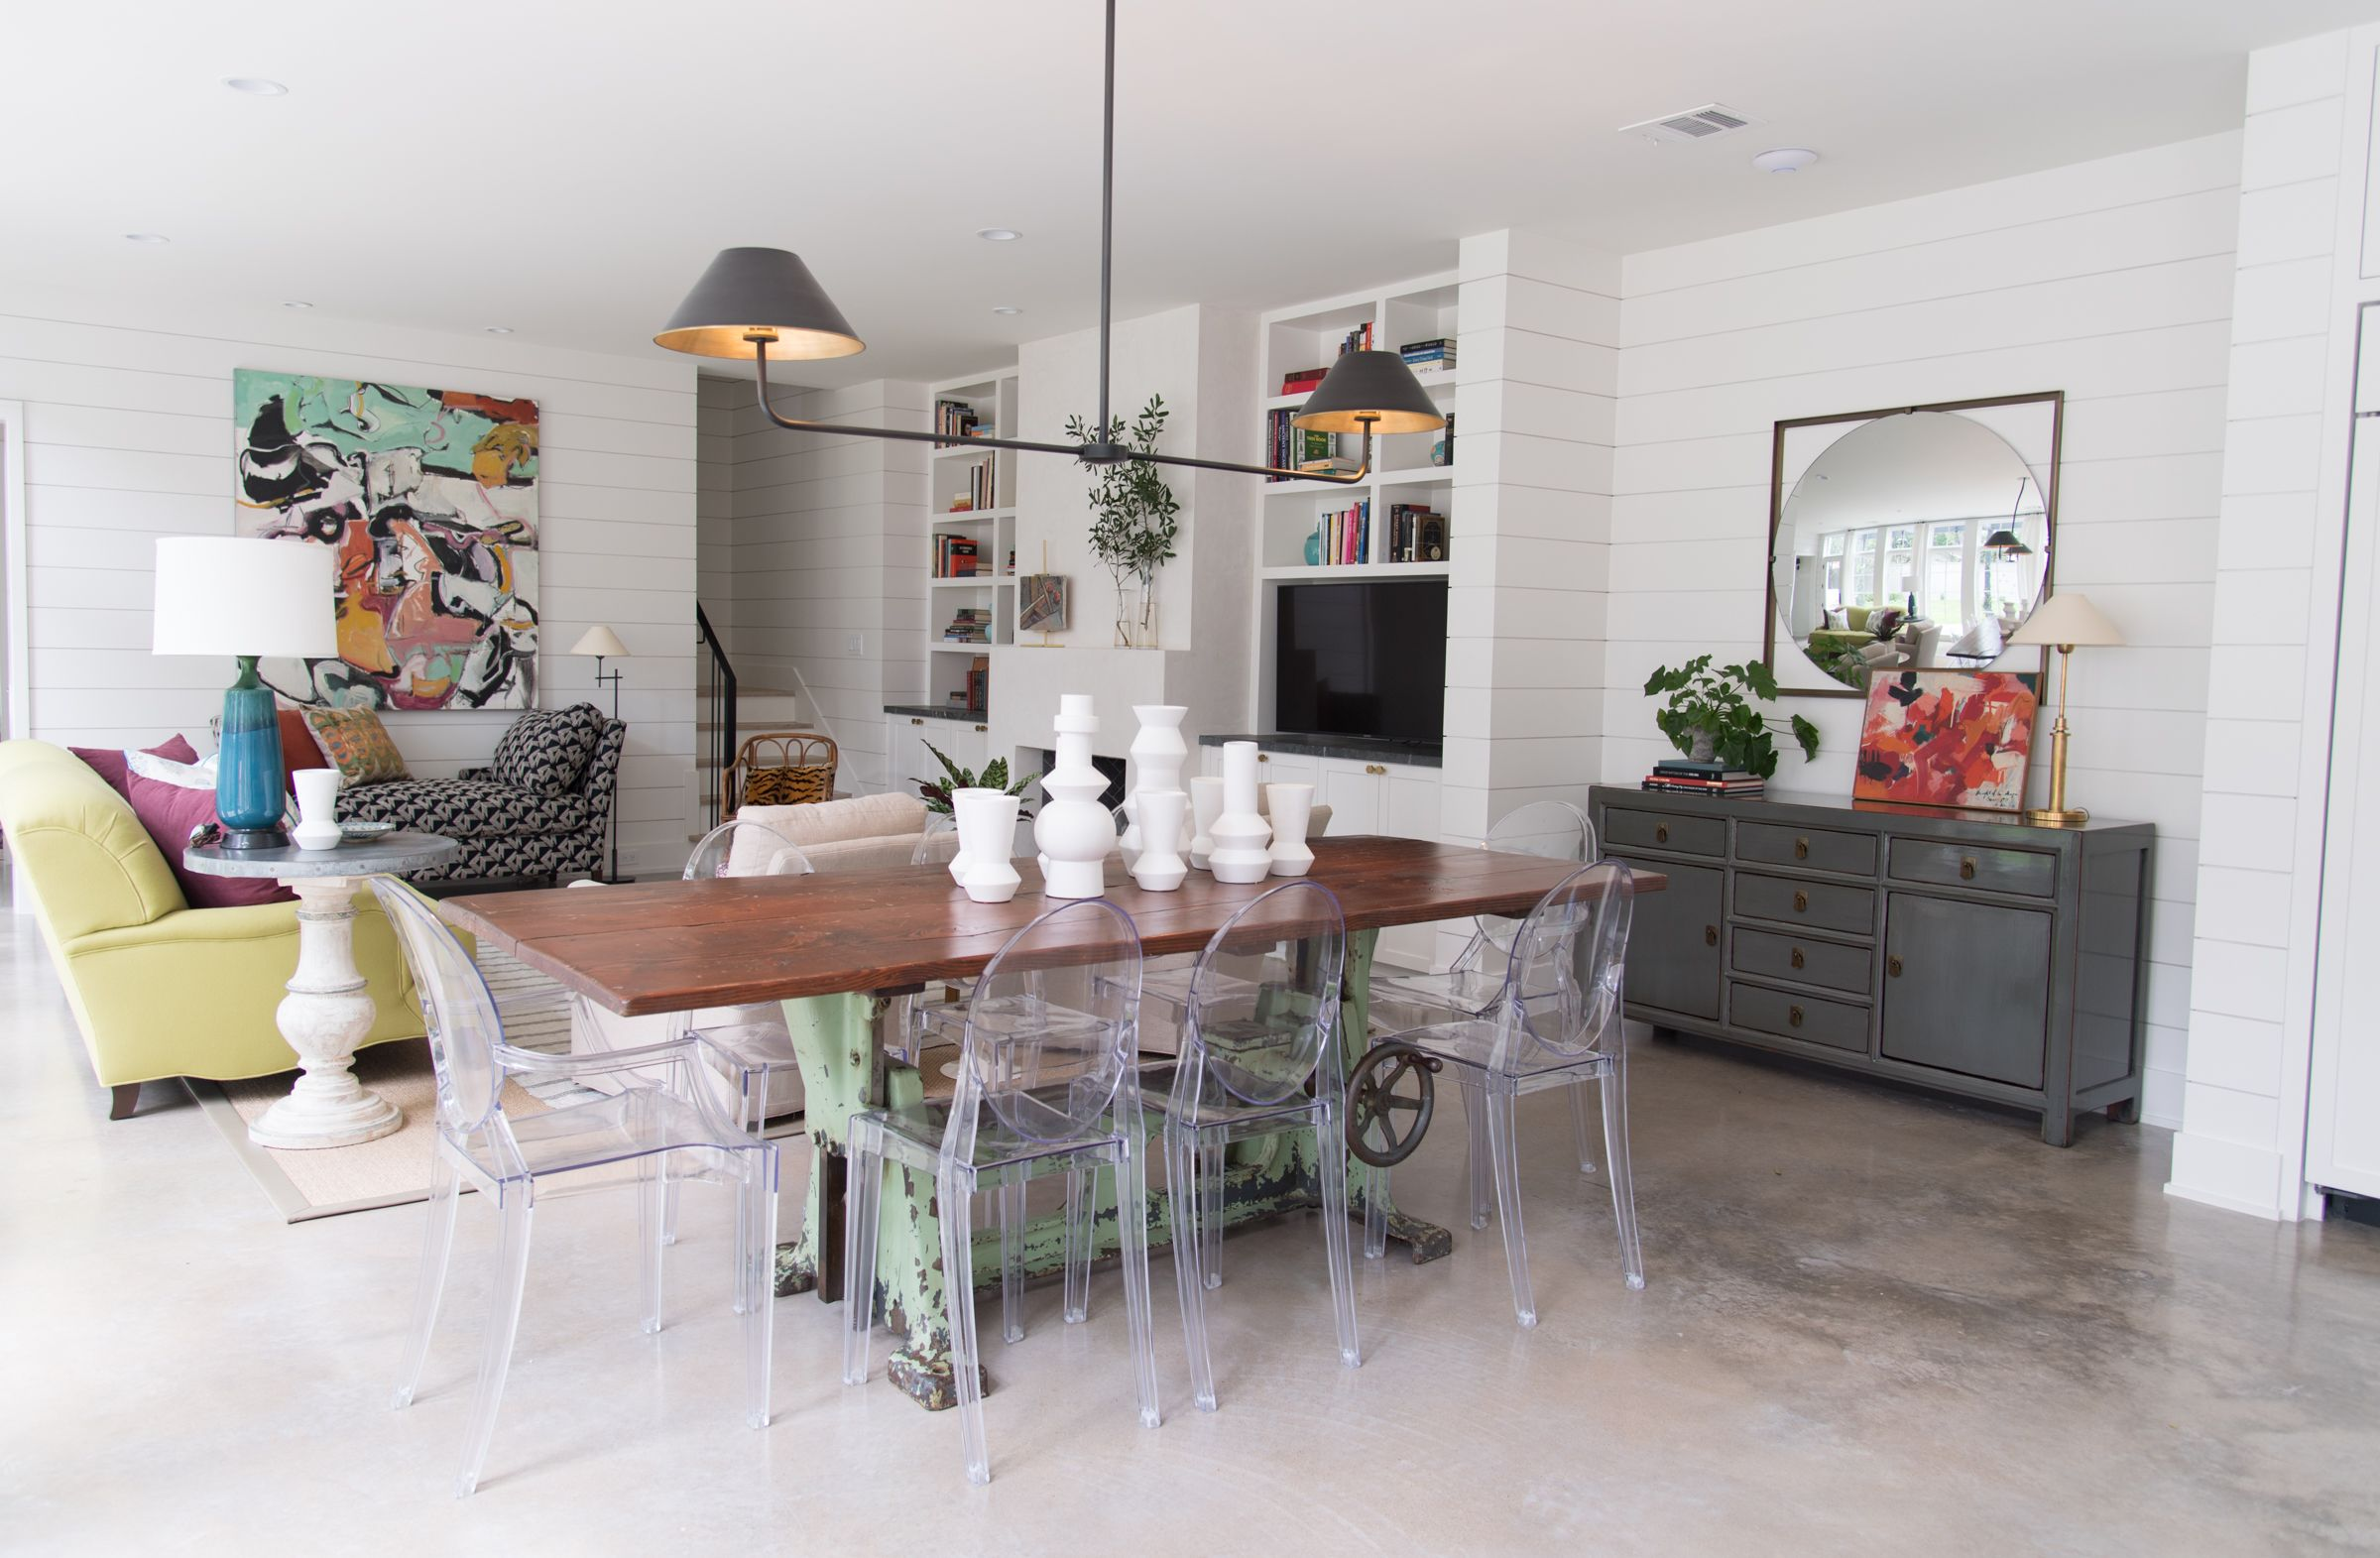 22 Ideas For Styling Acrylic Dining Chairs Acrylic Dining Chair Ideas